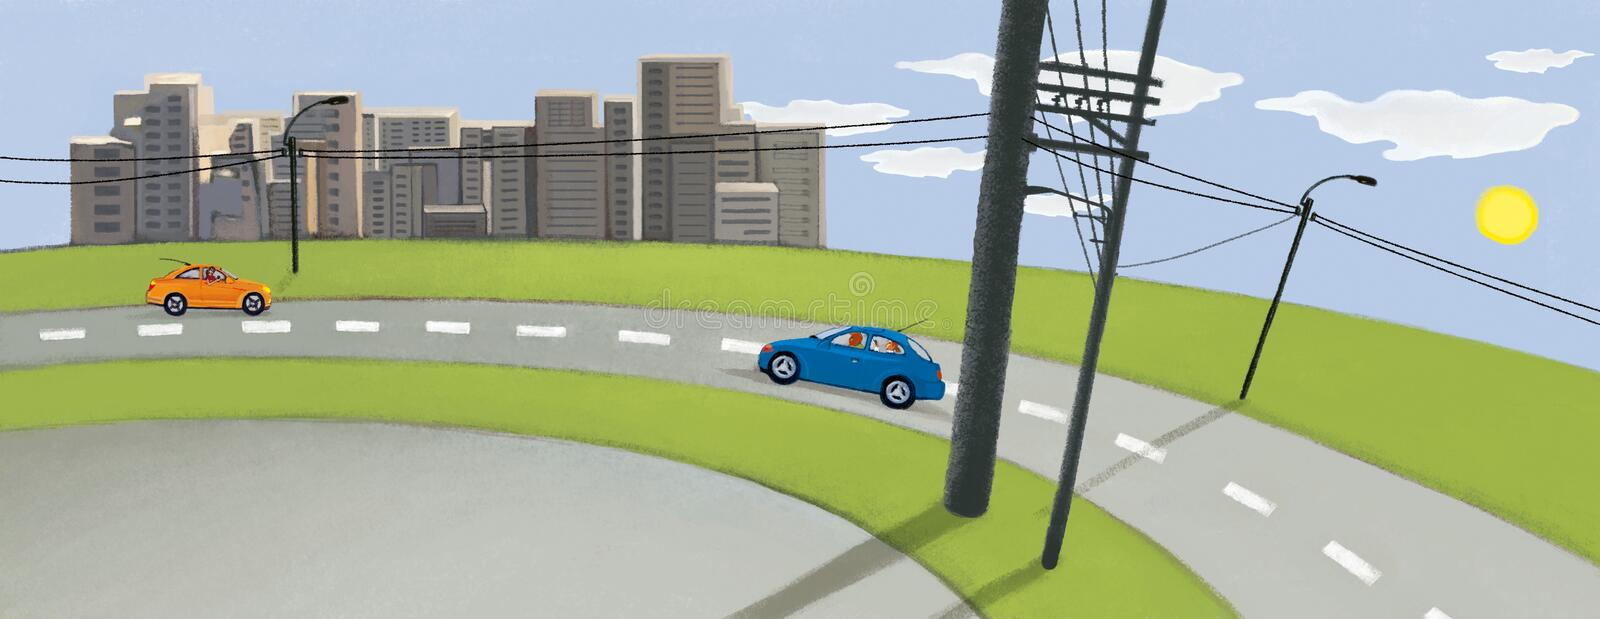 City against the blue sky and green field. Two cars on the road. Electric poles. Urban pastoral royalty free illustration